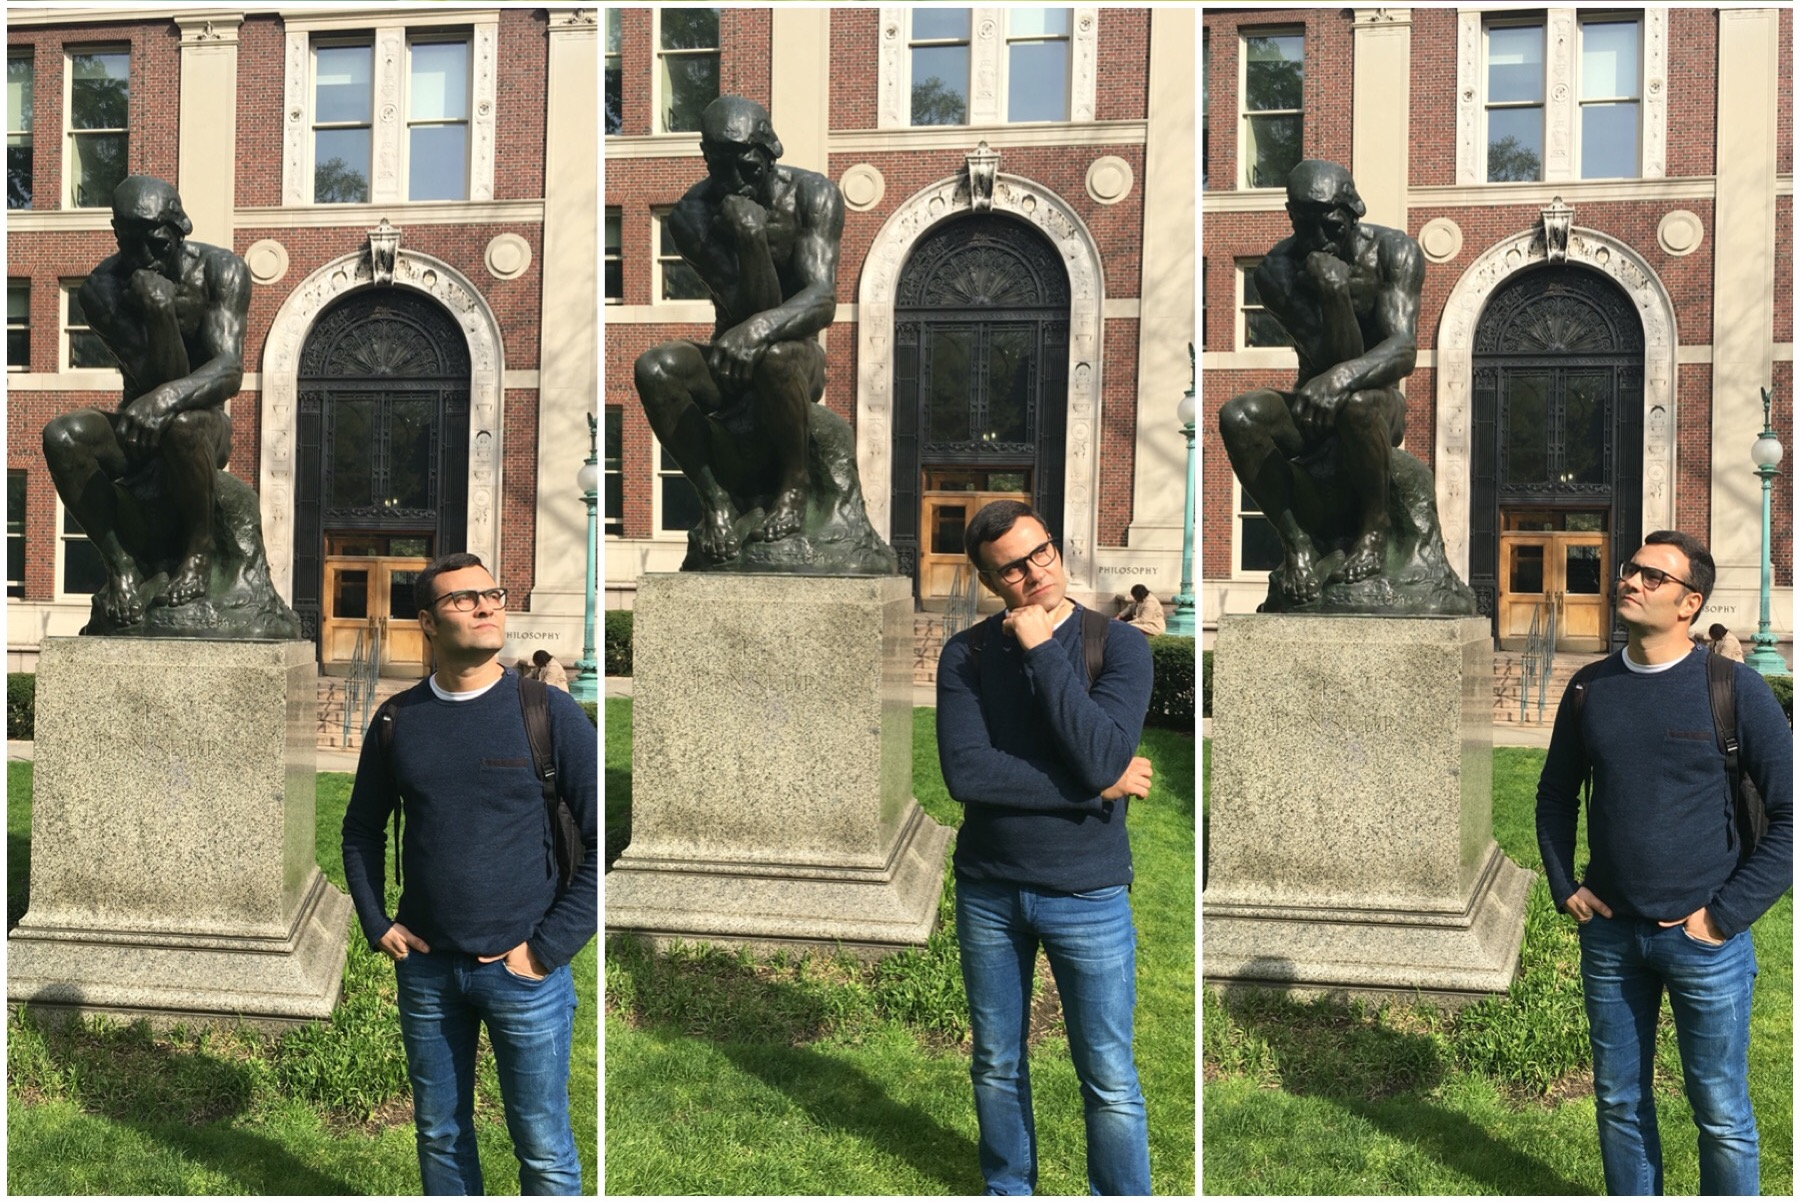 Murilo getting pensive with the famous sculpture  The Thinker  by Auguste Rodin.